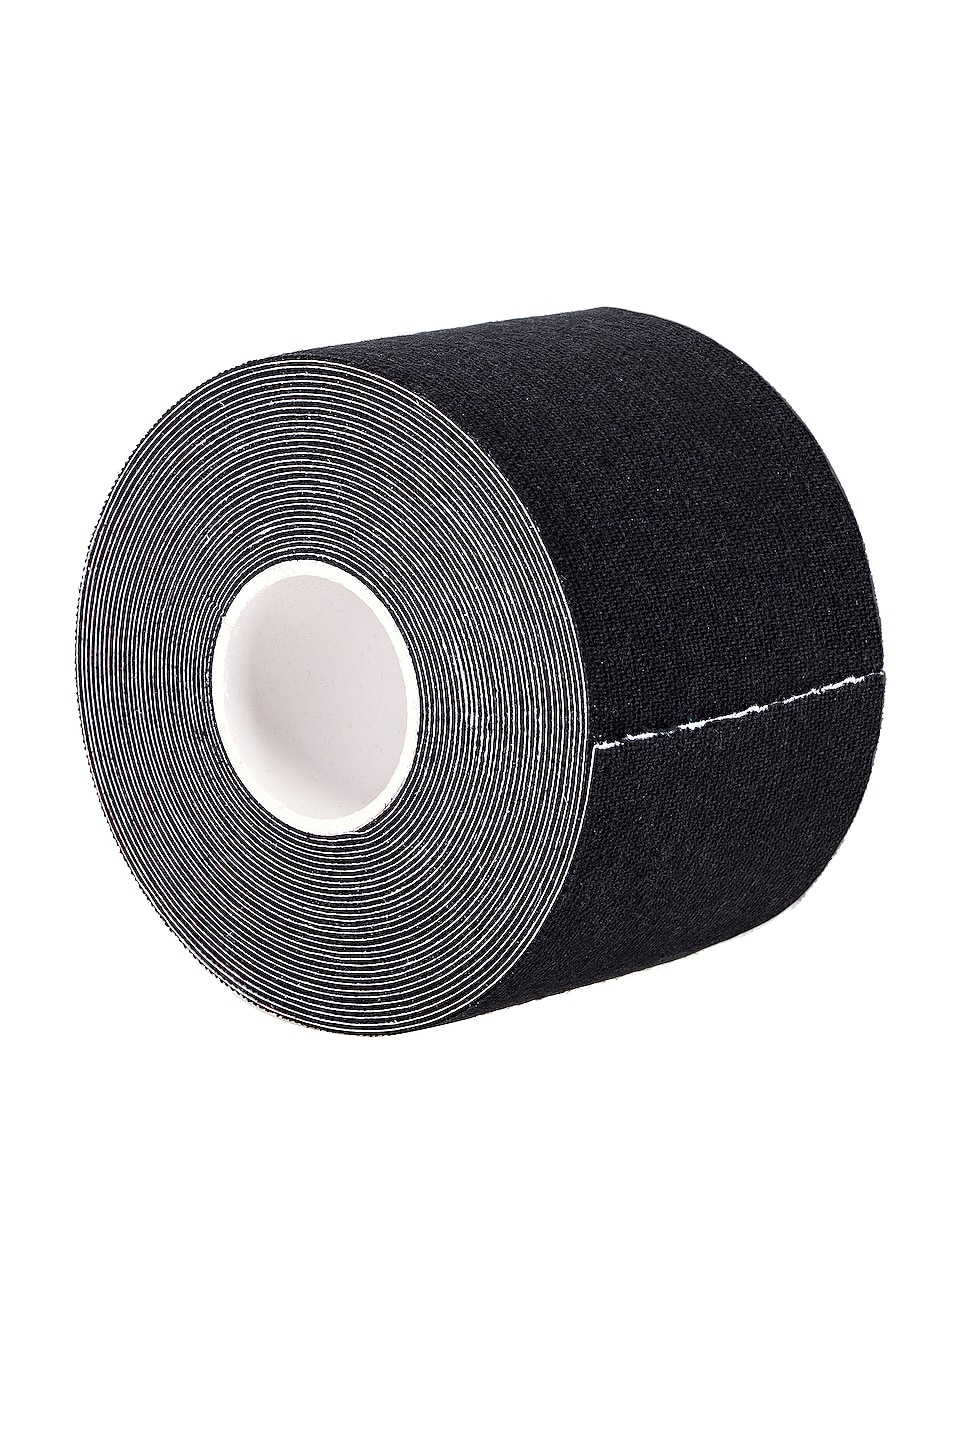 Booby Tape Booby Tape in Black